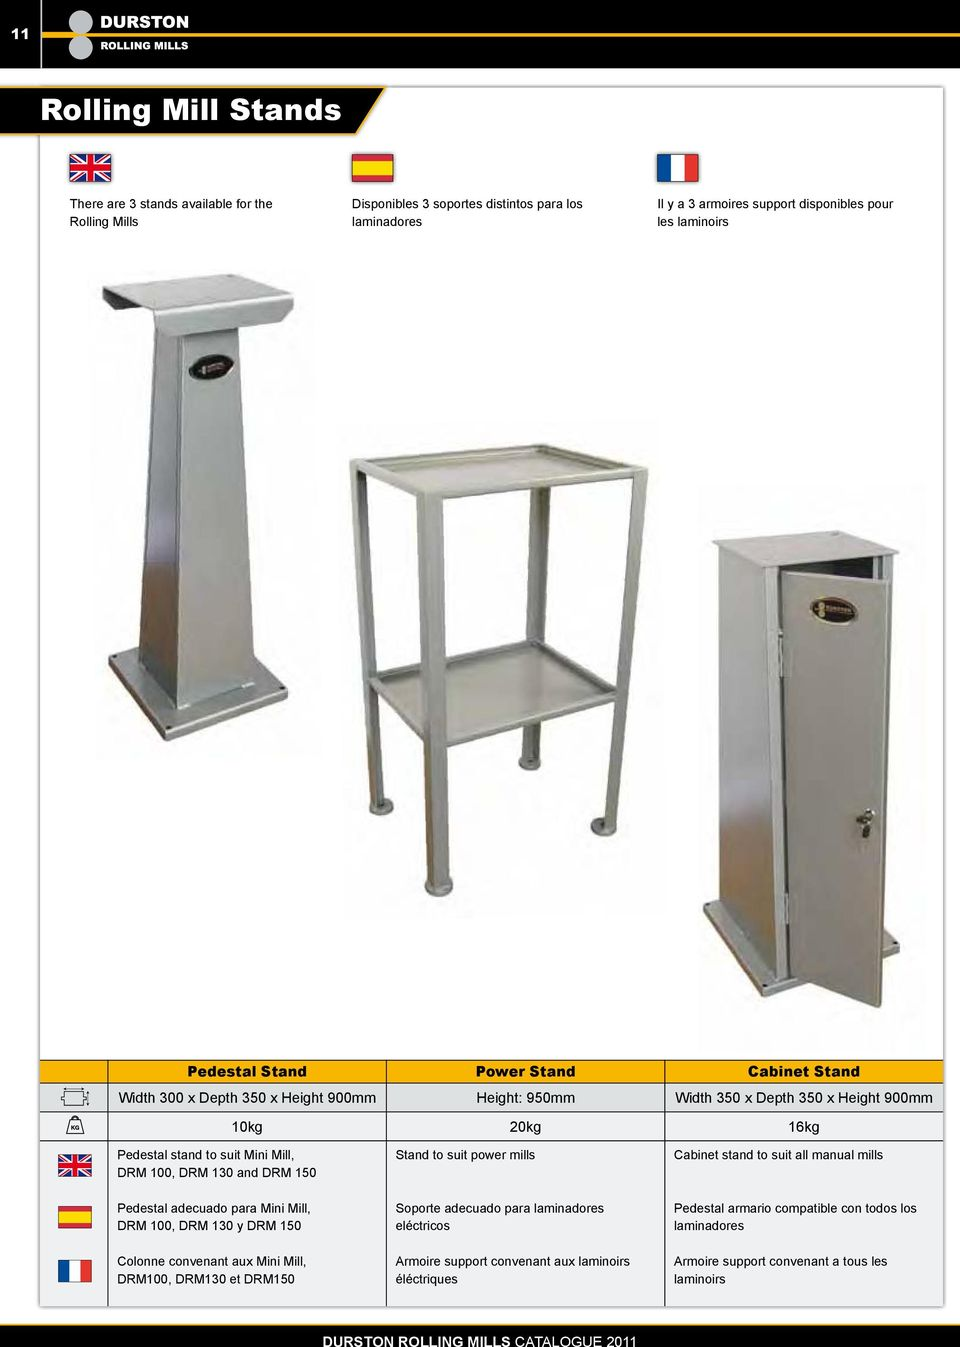 to suit power mills Cabinet stand to suit all manual mills Pedestal adecuado para Mini Mill, DRM 100, DRM 130 y DRM 150 Colonne convenant aux Mini Mill, DRM100, DRM130 et DRM150 Soporte adecuado para